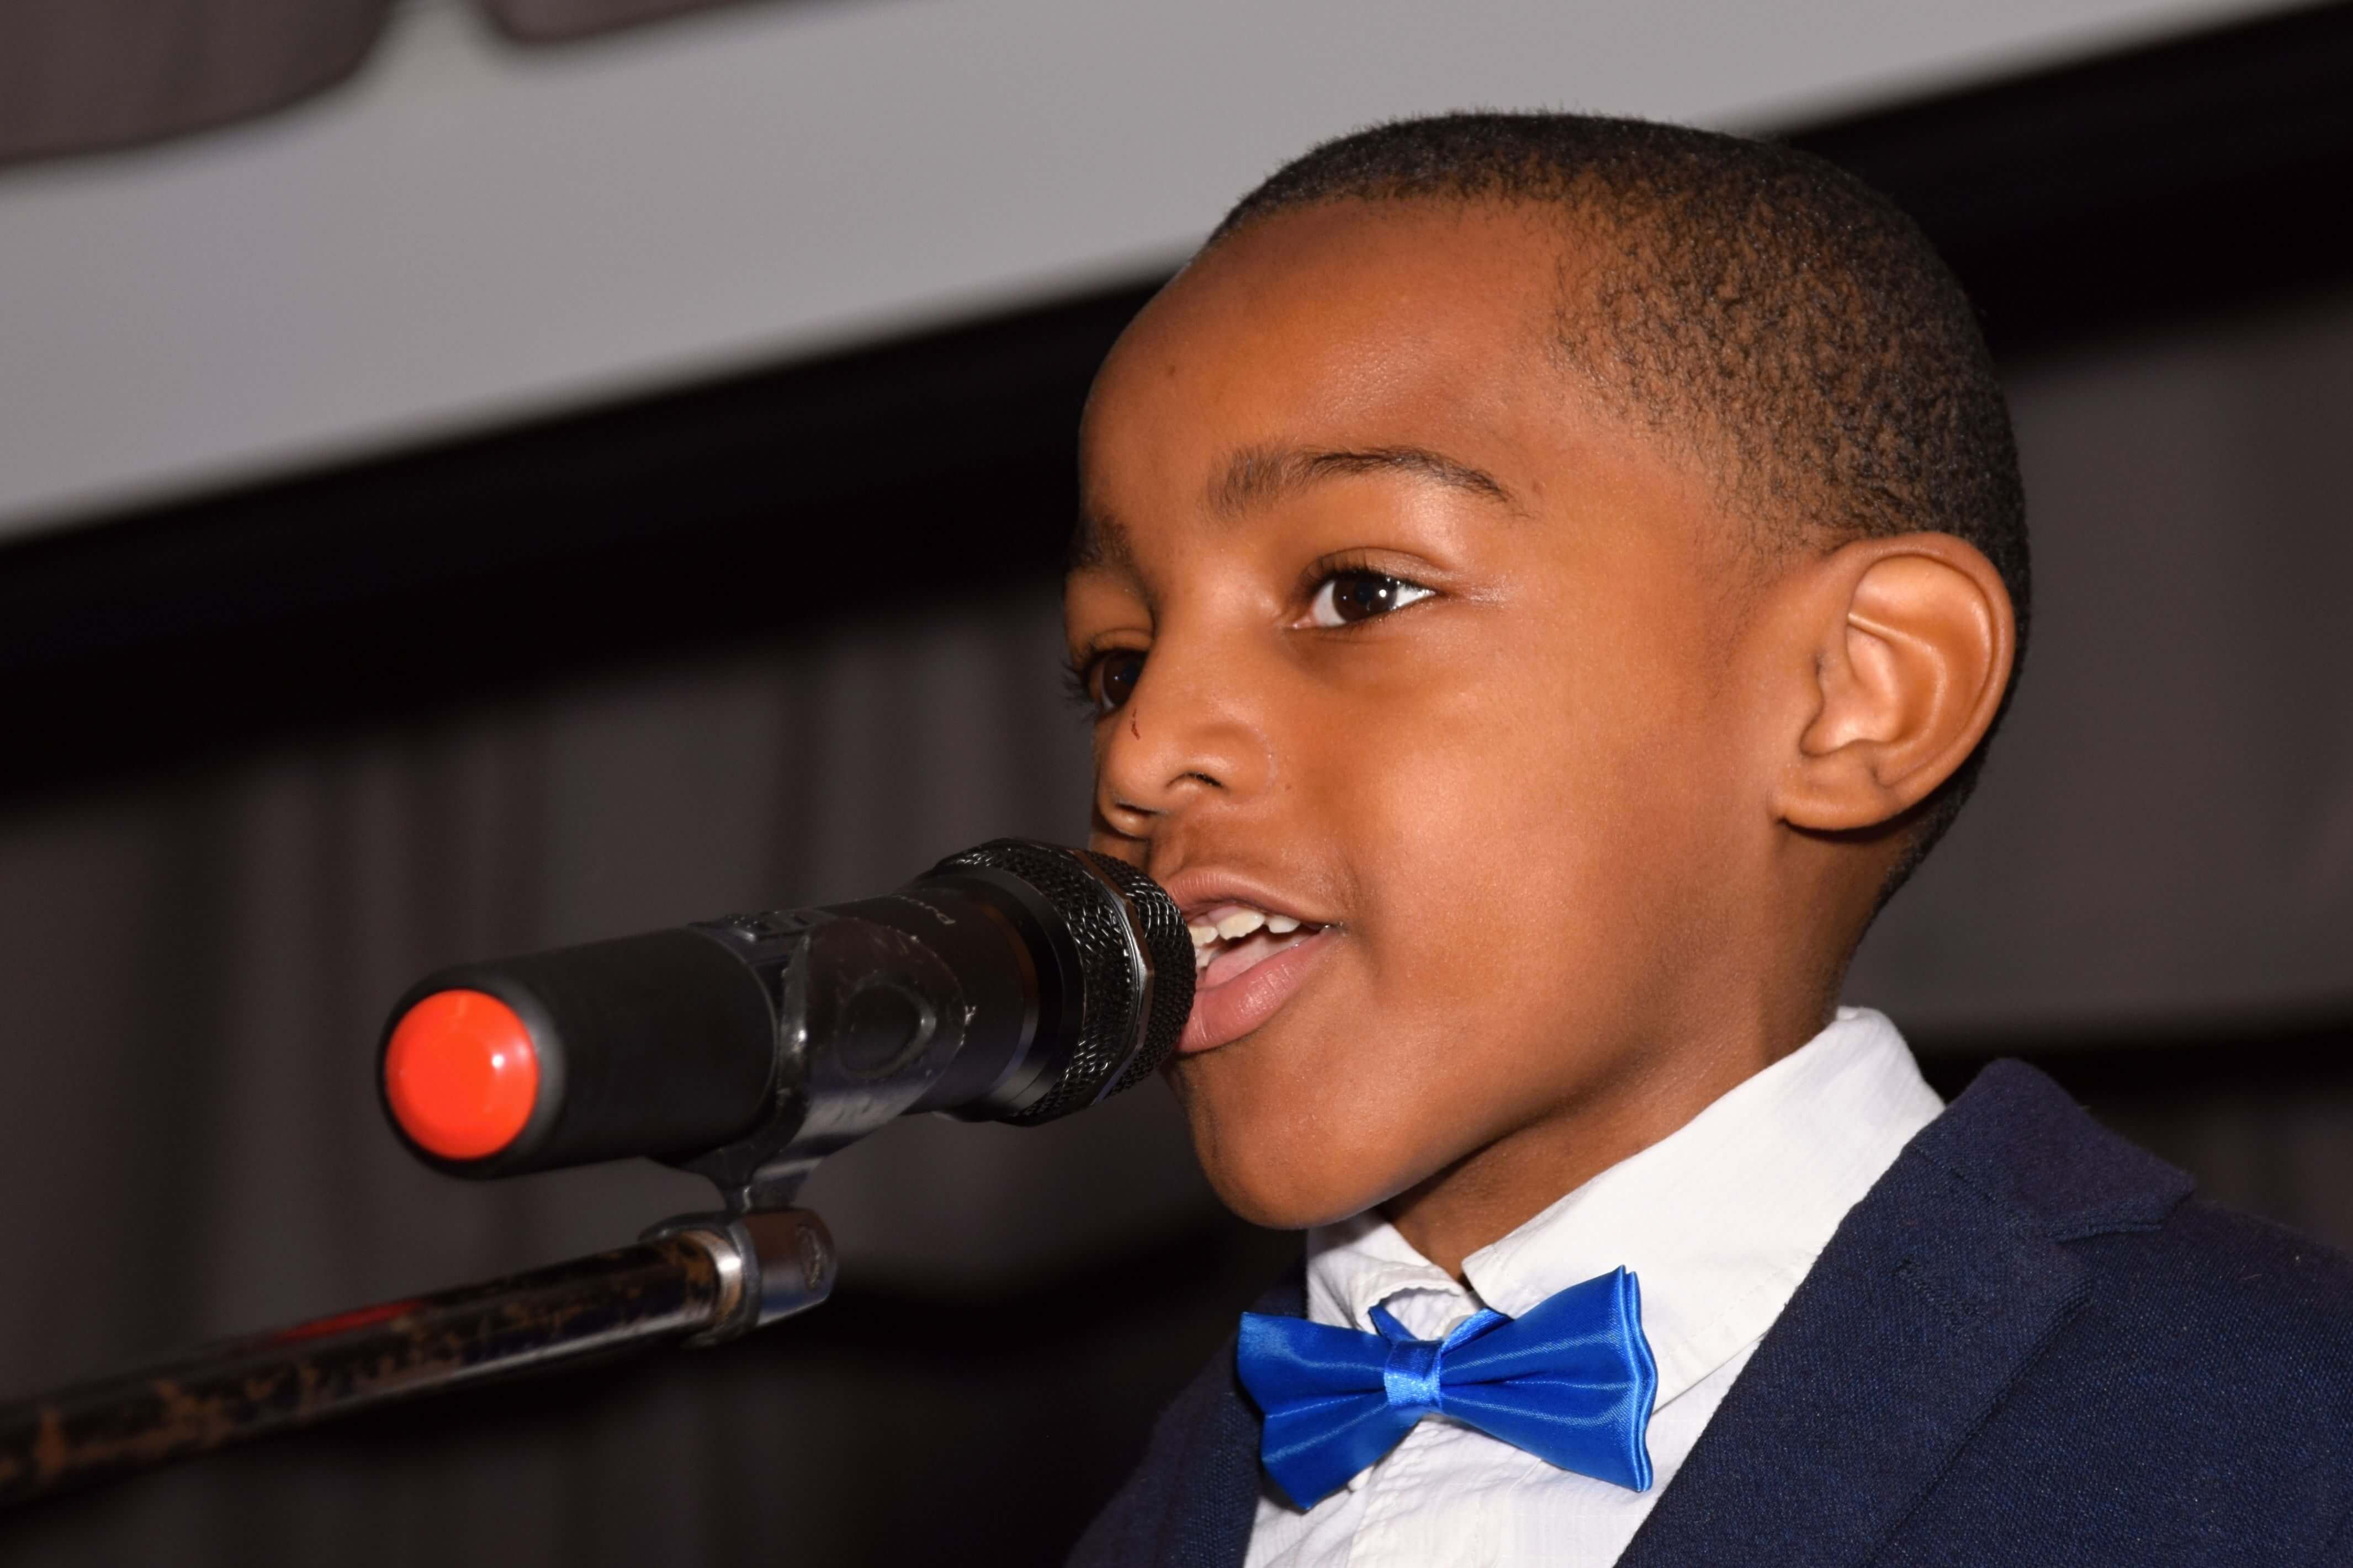 boy narrating with blue bow tie